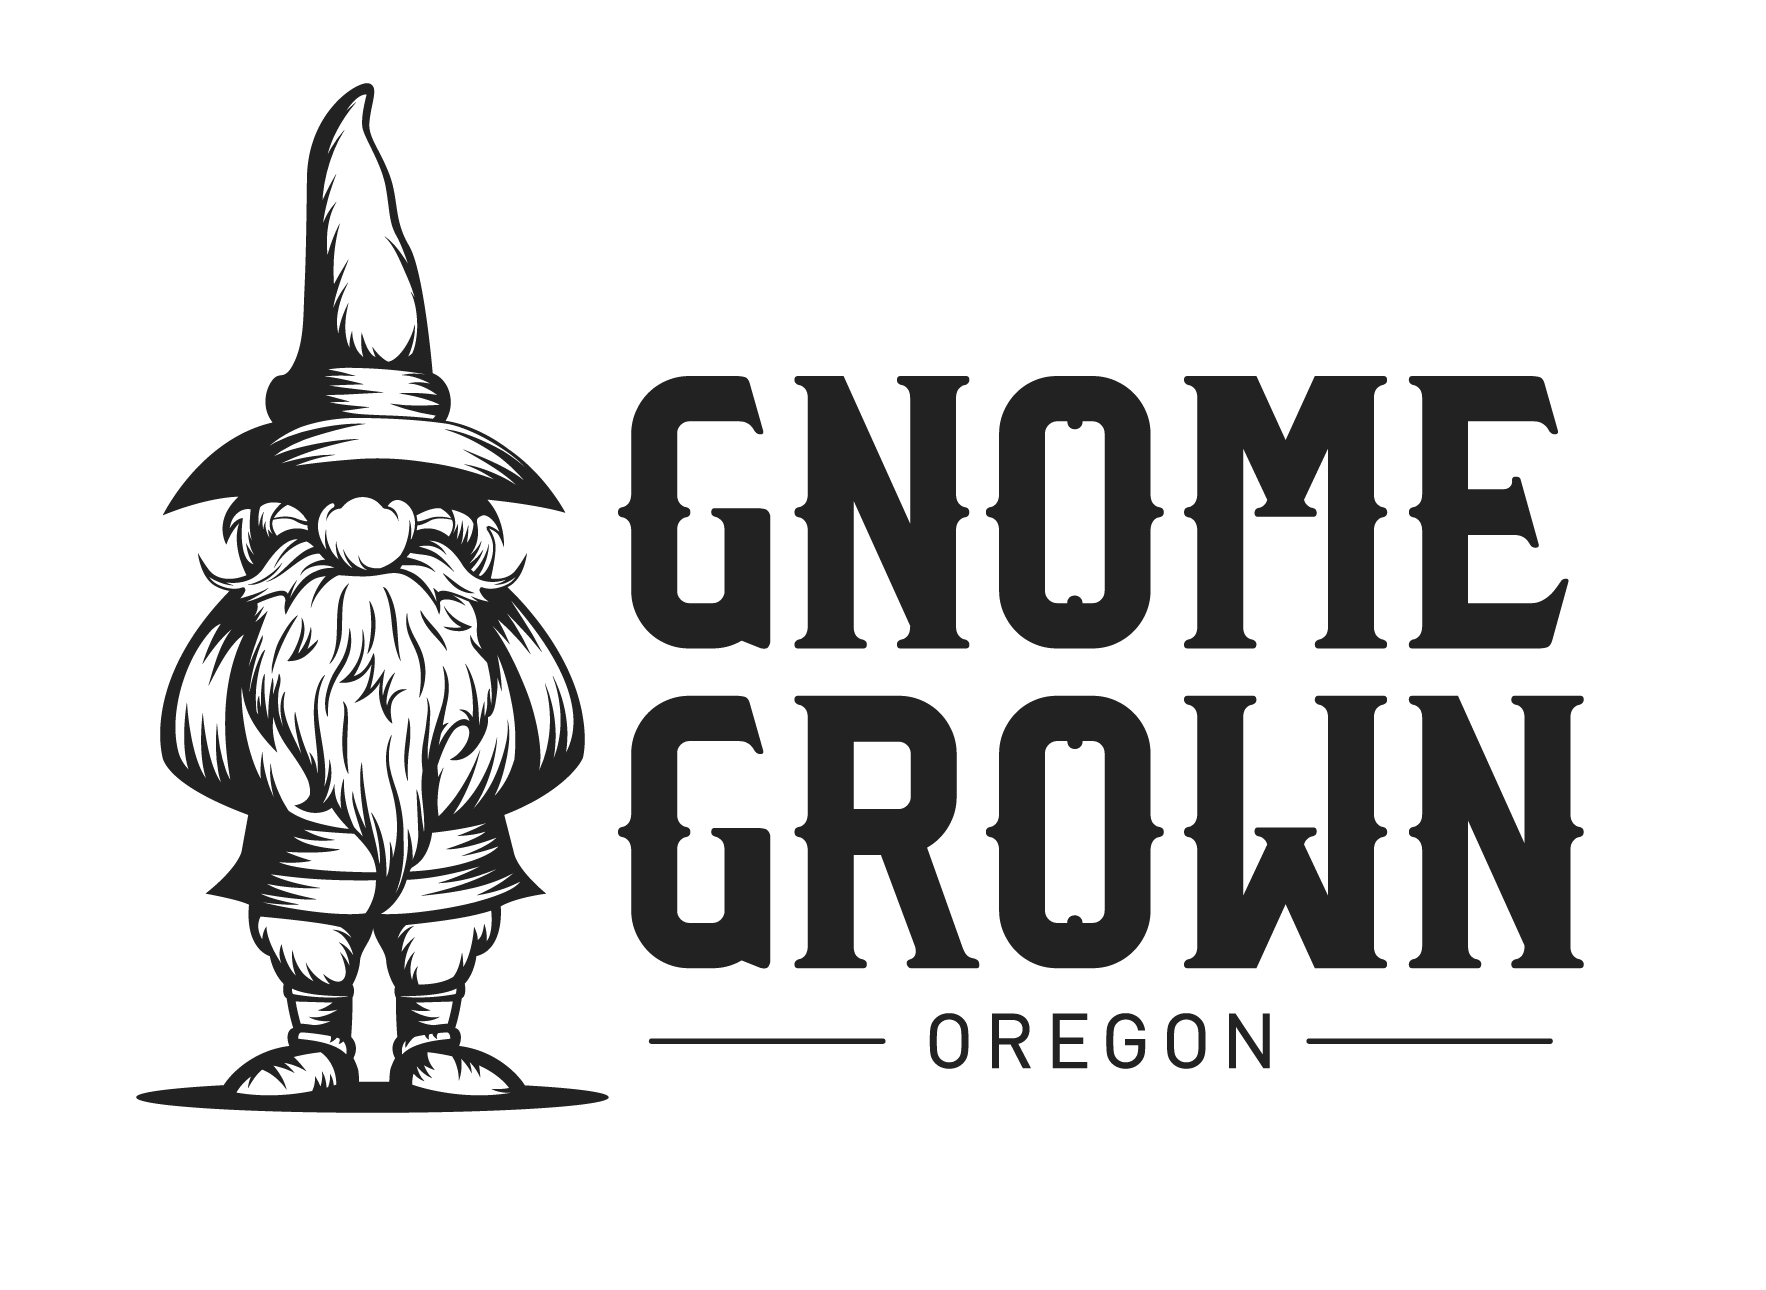 Grome grown - For Over 25 Years Gnome Grown has been producing the finest cannabis in the Pacific NW. We hold ourselves to the highest standard of regenerative growing practices, handcrafted cultivation, and post-harvest care.